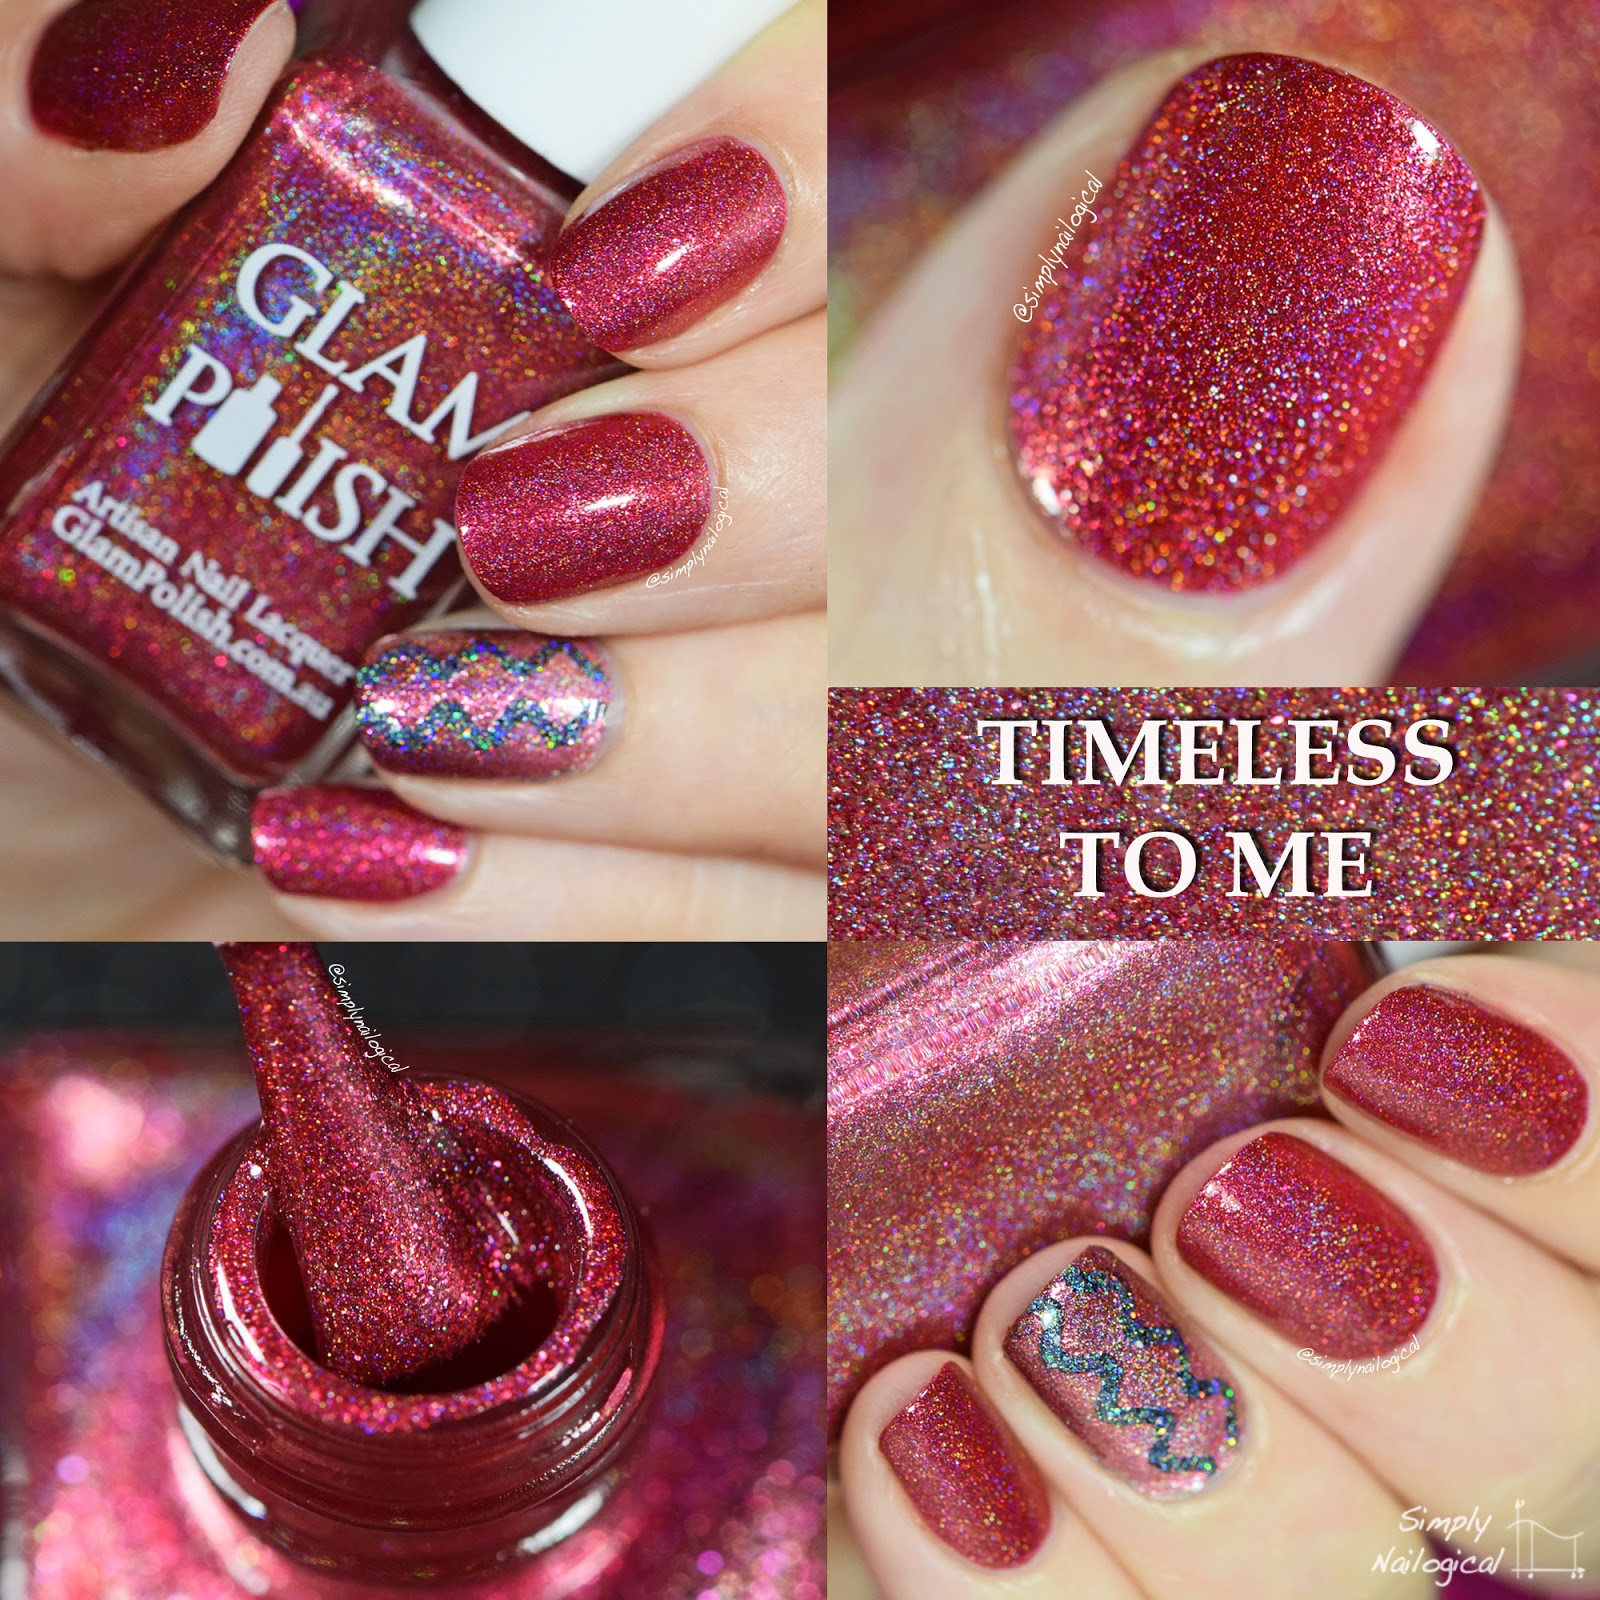 Glam Polish Timeless to Me